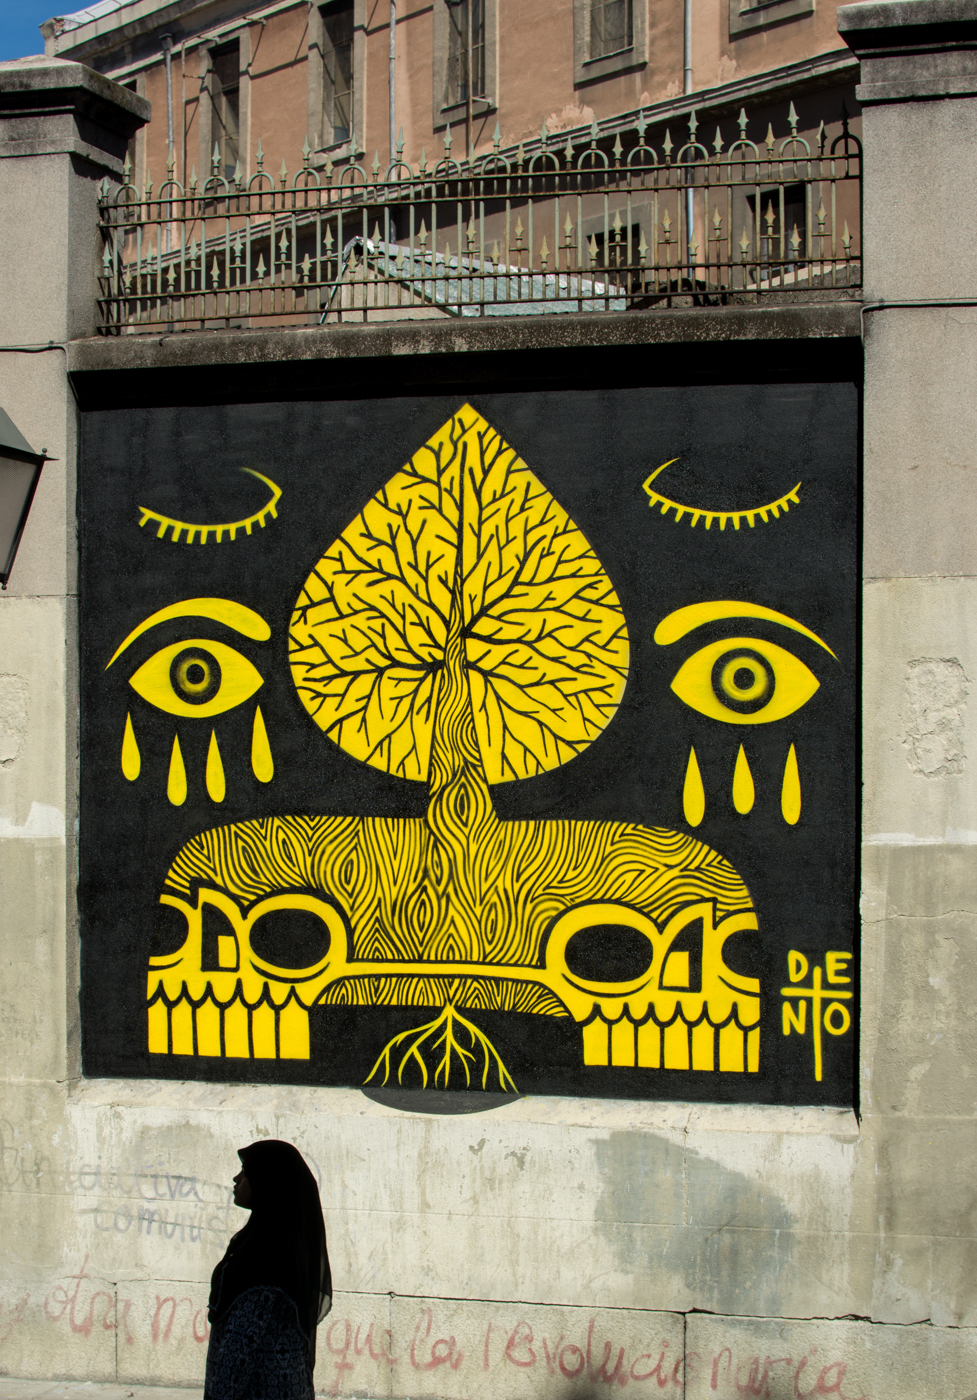 Deno final - MurosTabacalera by Guillermo de la Madrid - Madrid Street Art Project-001.jpg